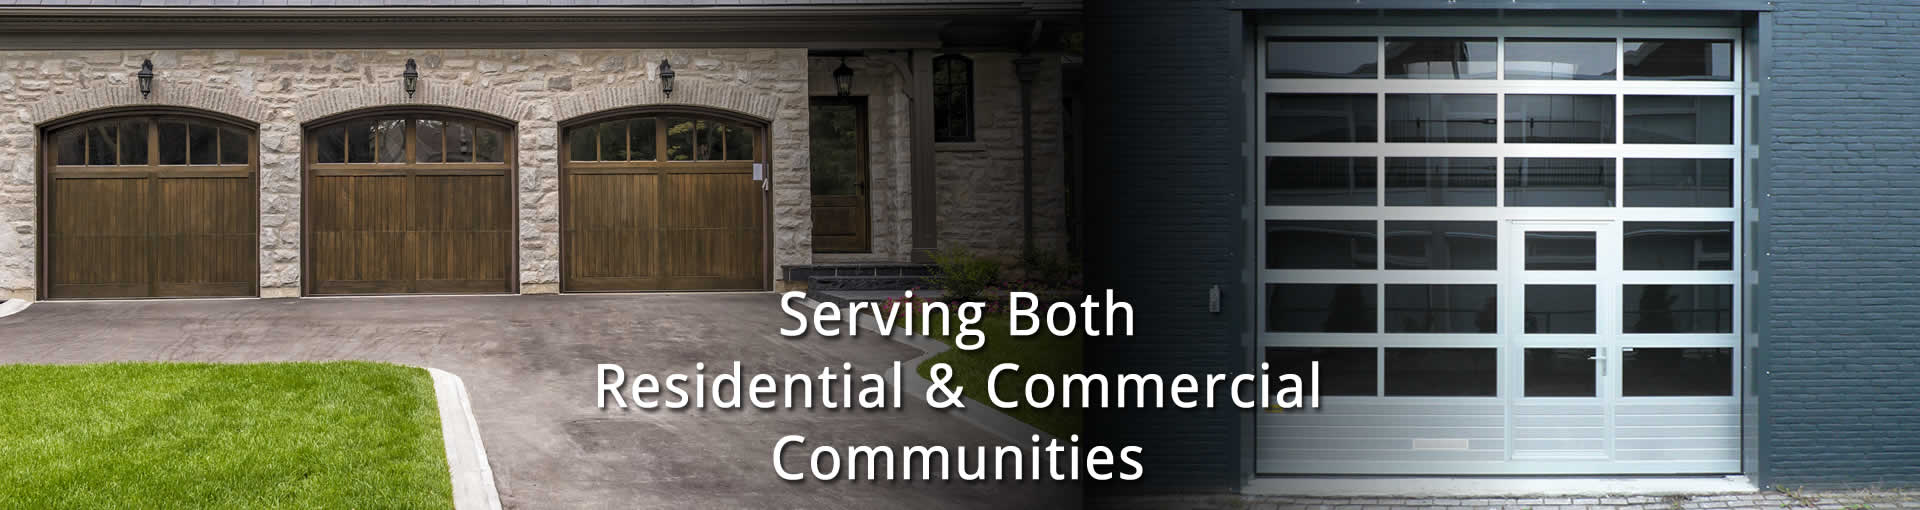 Serving Both the Residential & Commercial Communities